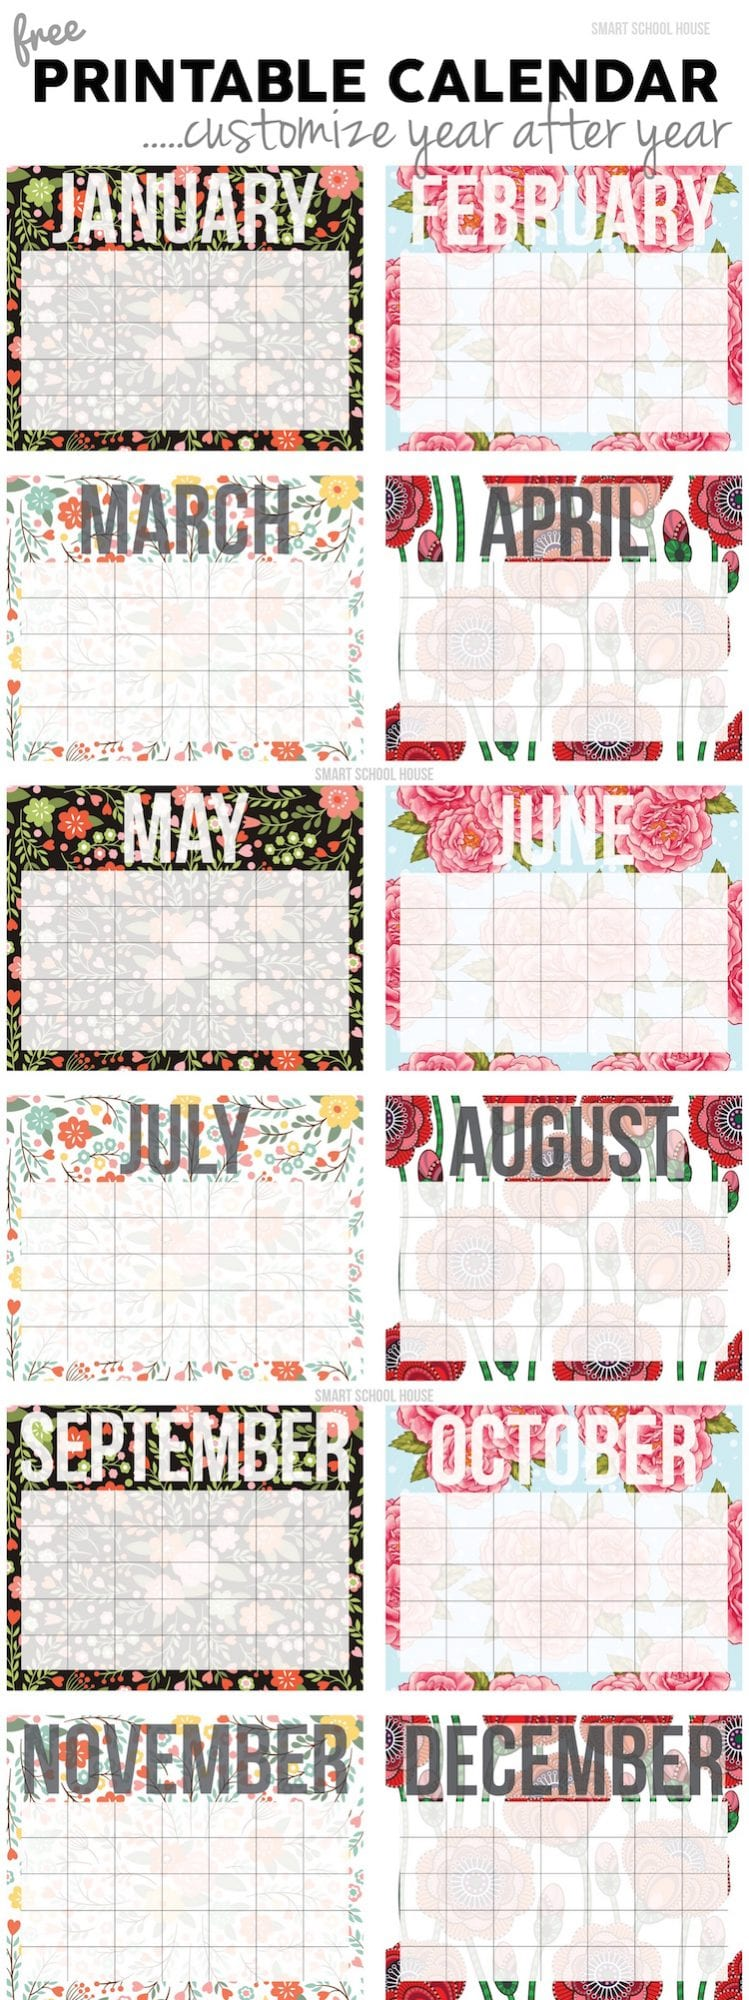 Customizable Calendar Printout to download with ability to customize!